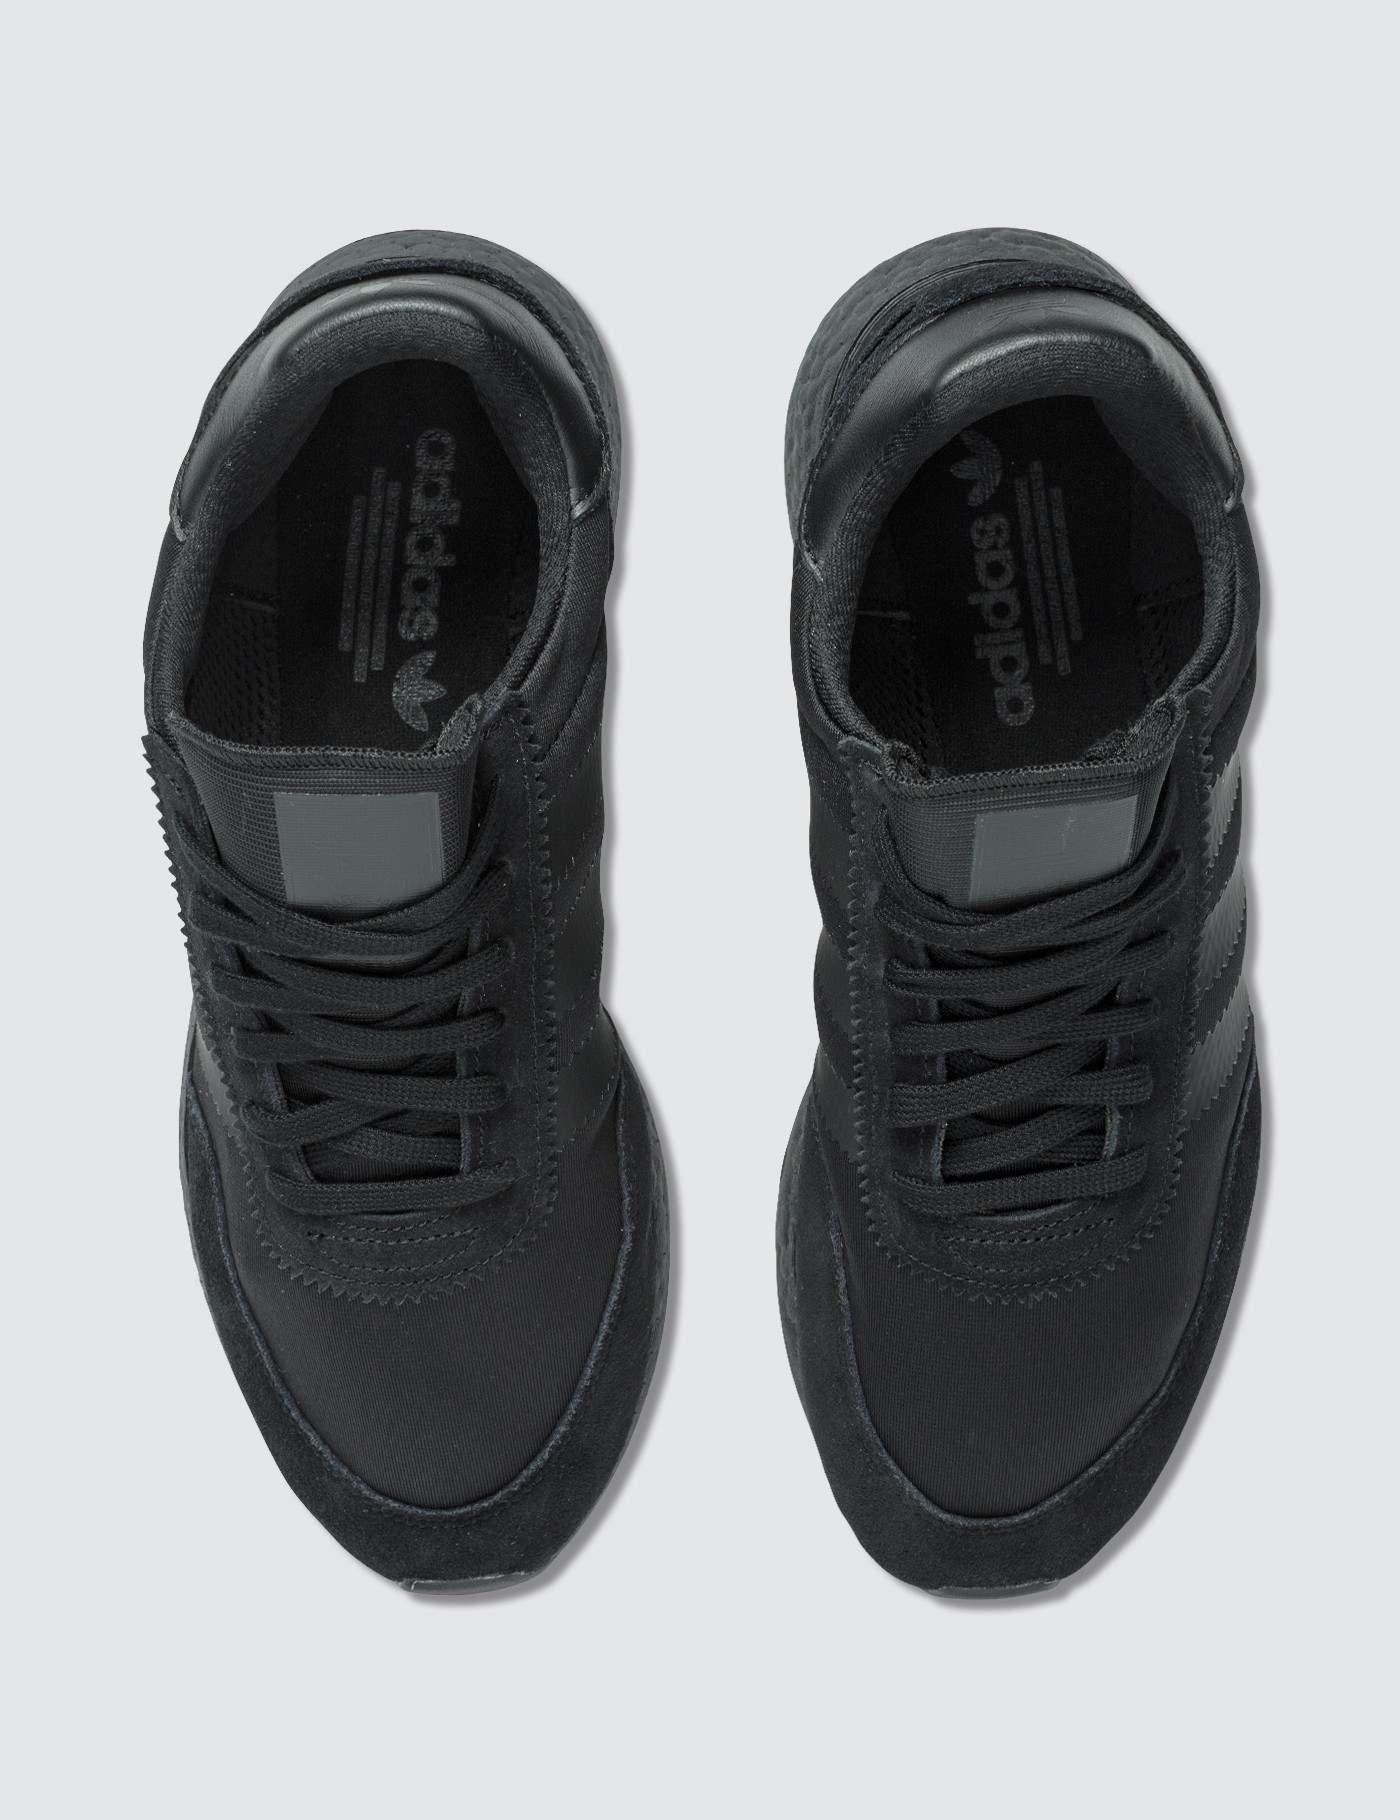 Adidas Originals Black I-5923 Sneakers